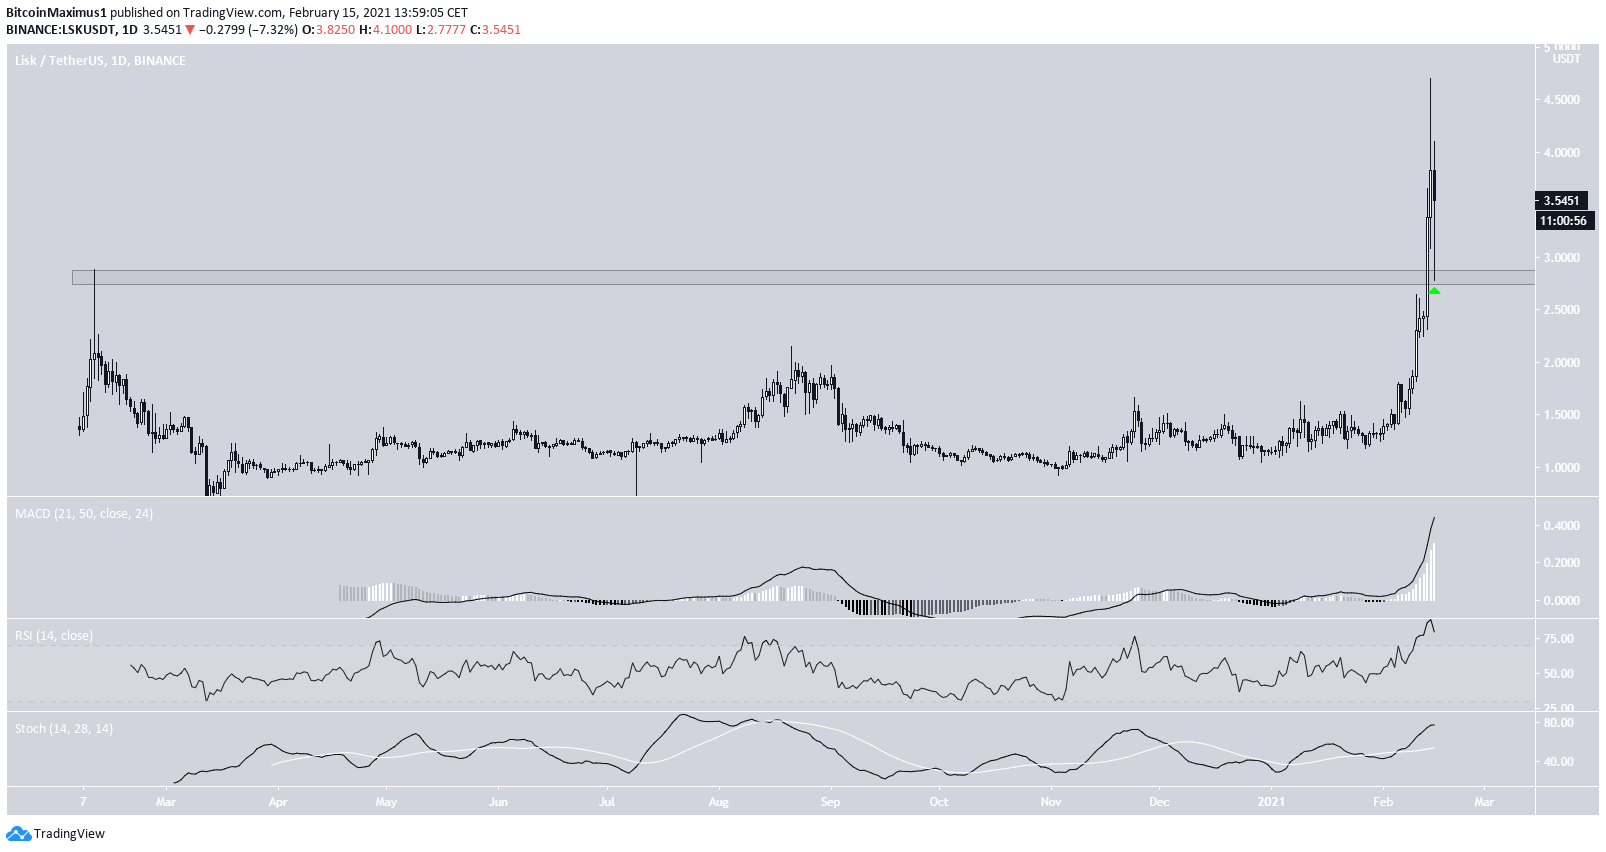 LSK Daily Movement